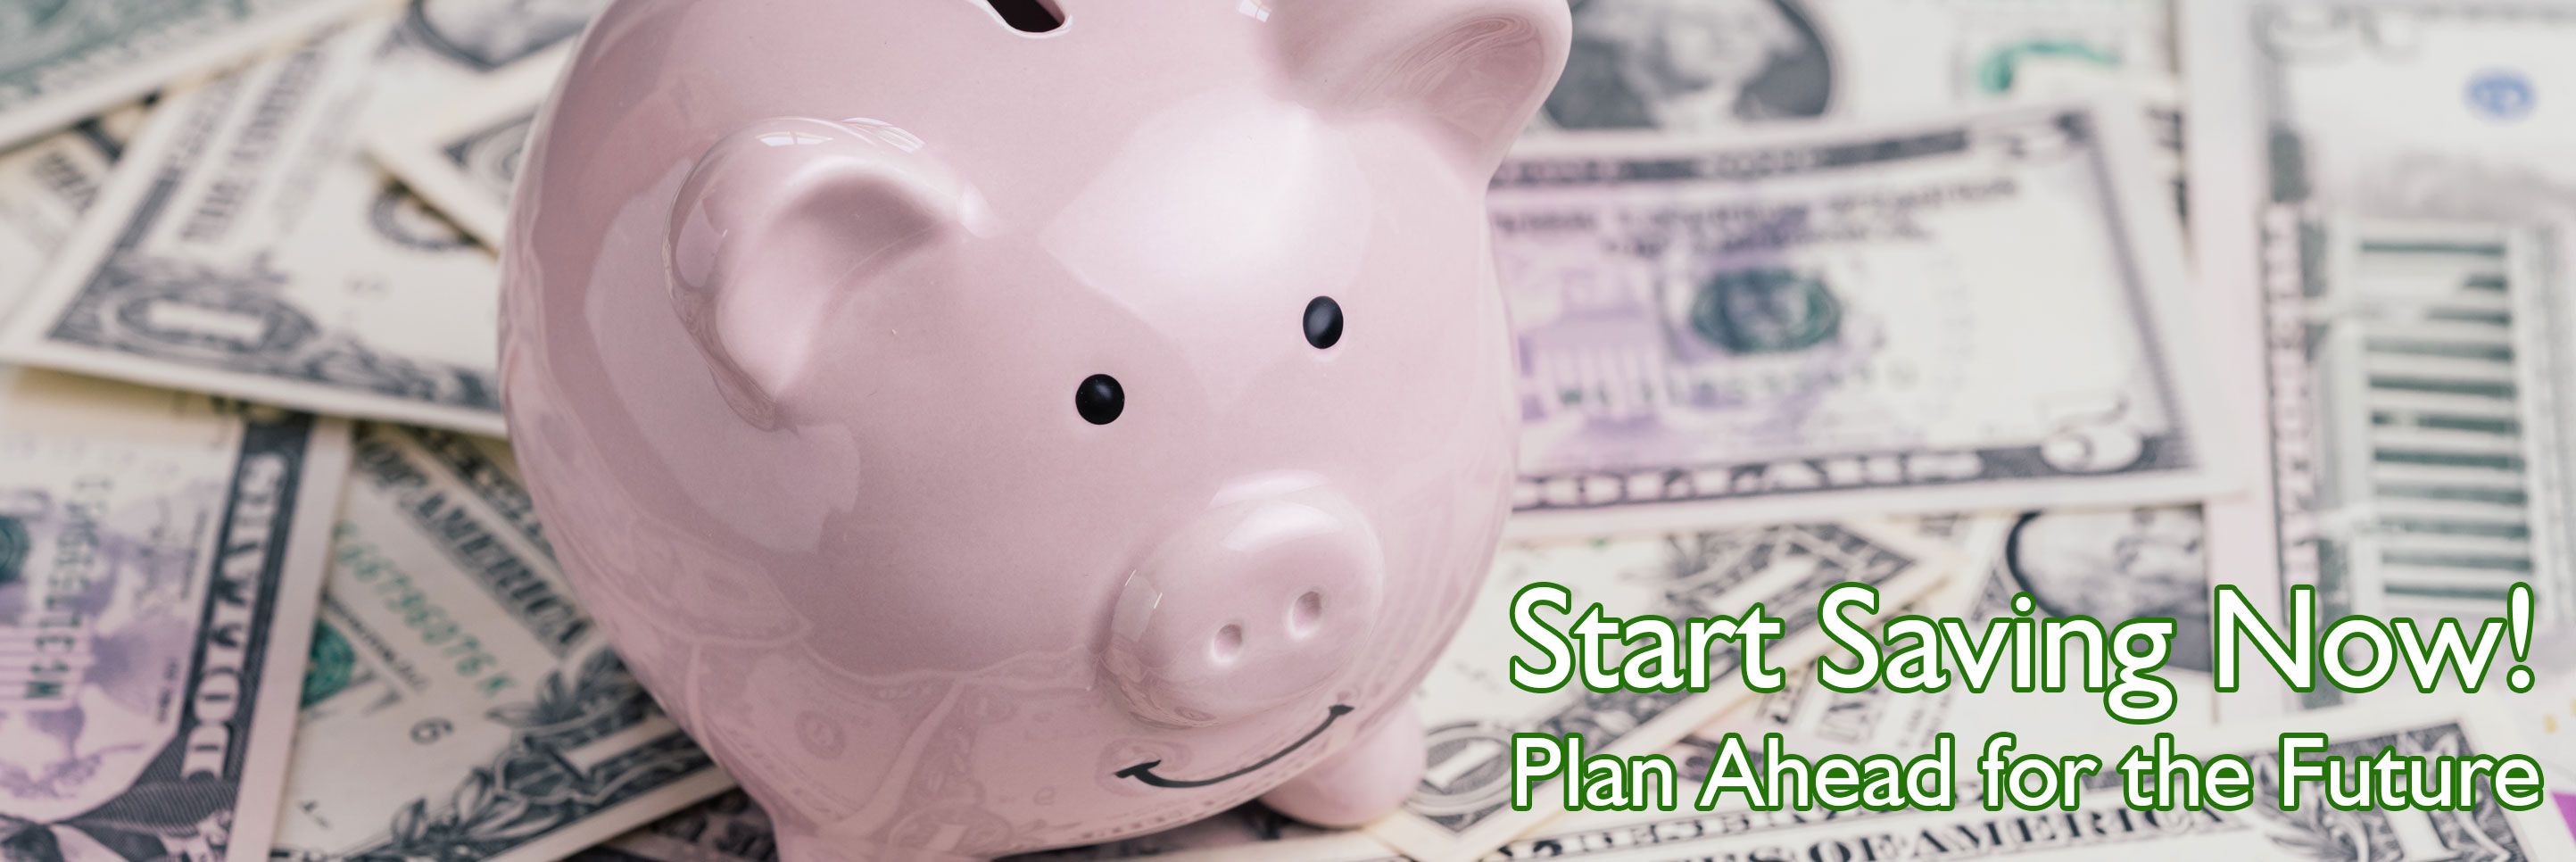 Start Saving Now! plan ahead for the future.